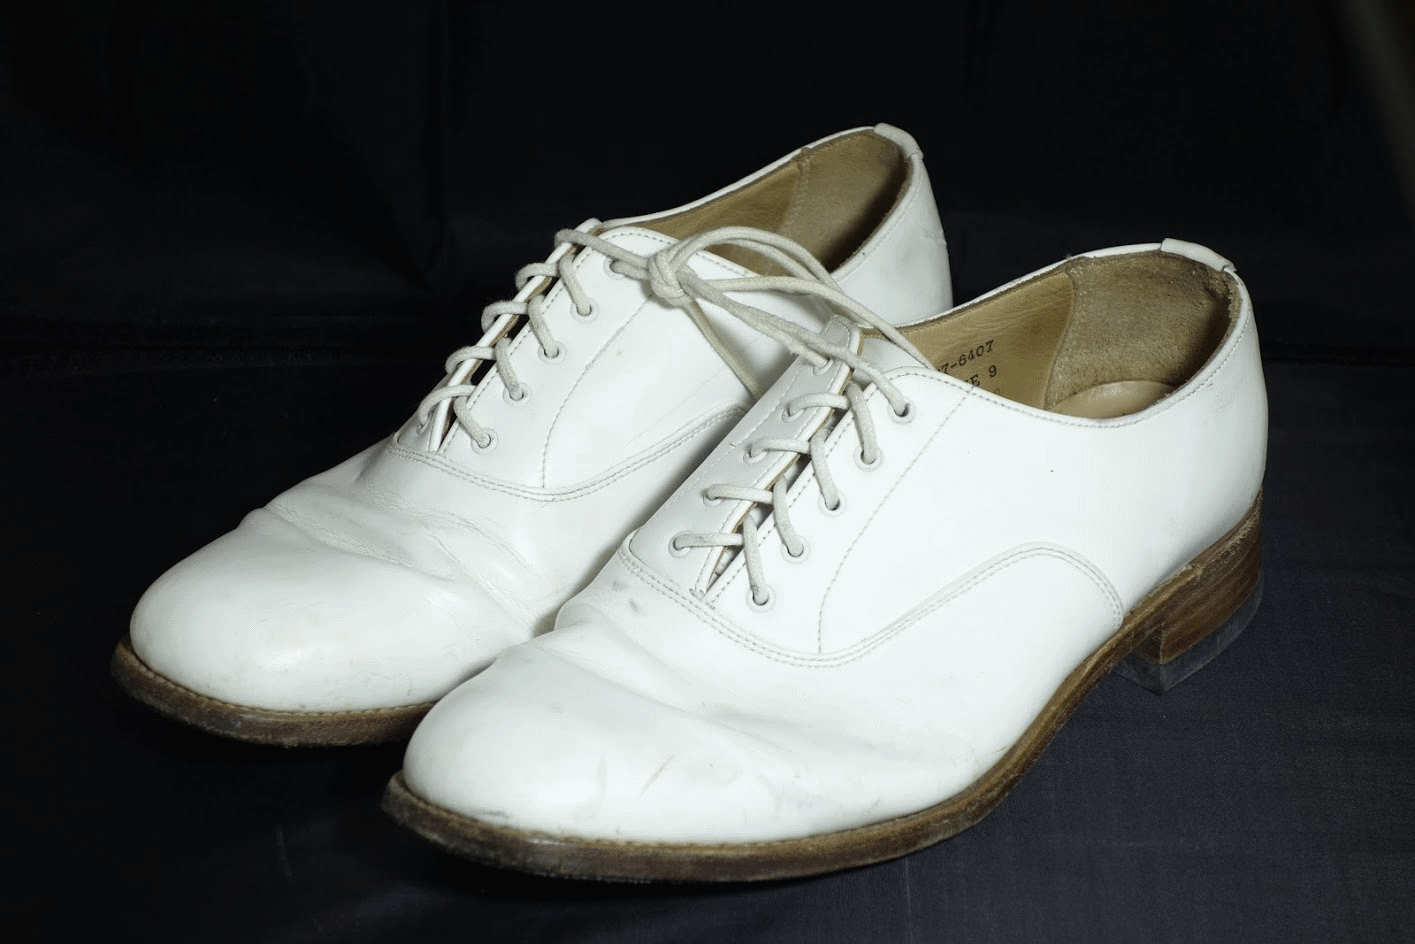 navy surplus WHITE leather parade shoes